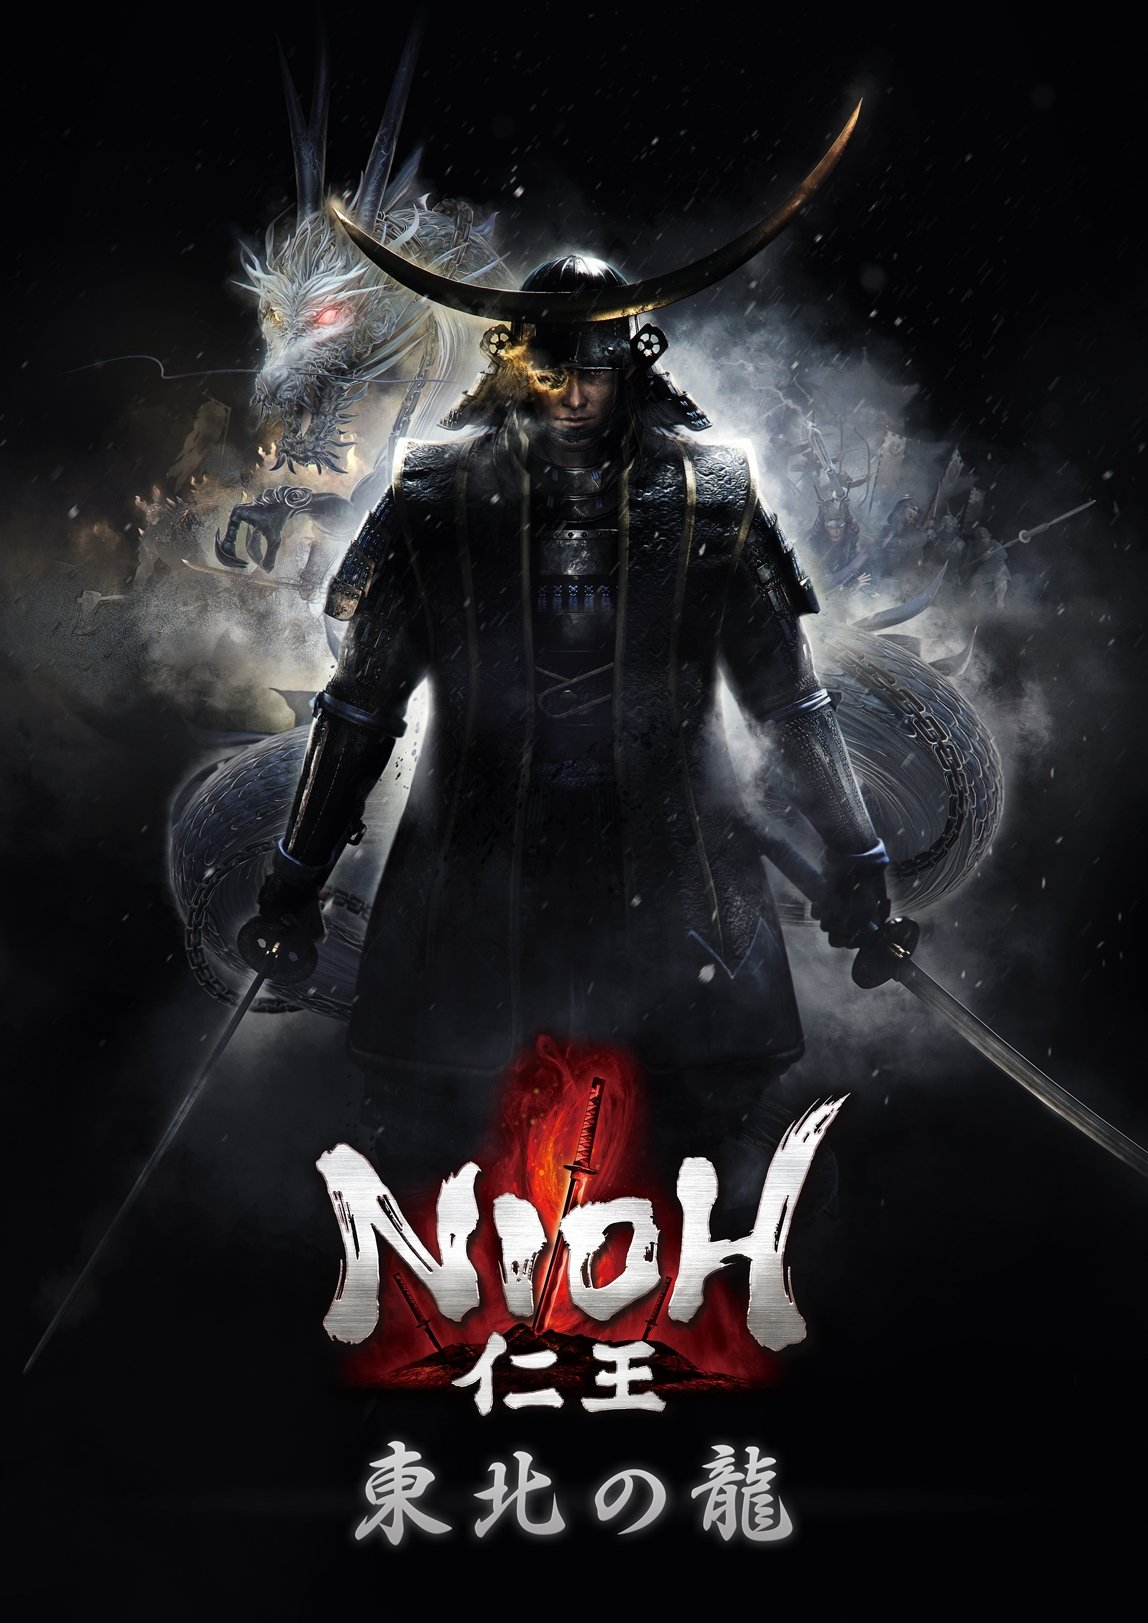 PS4 Exclusive NiOh's First Story DLC Will Feature Date Masamune; Gorgeous Key Art Released